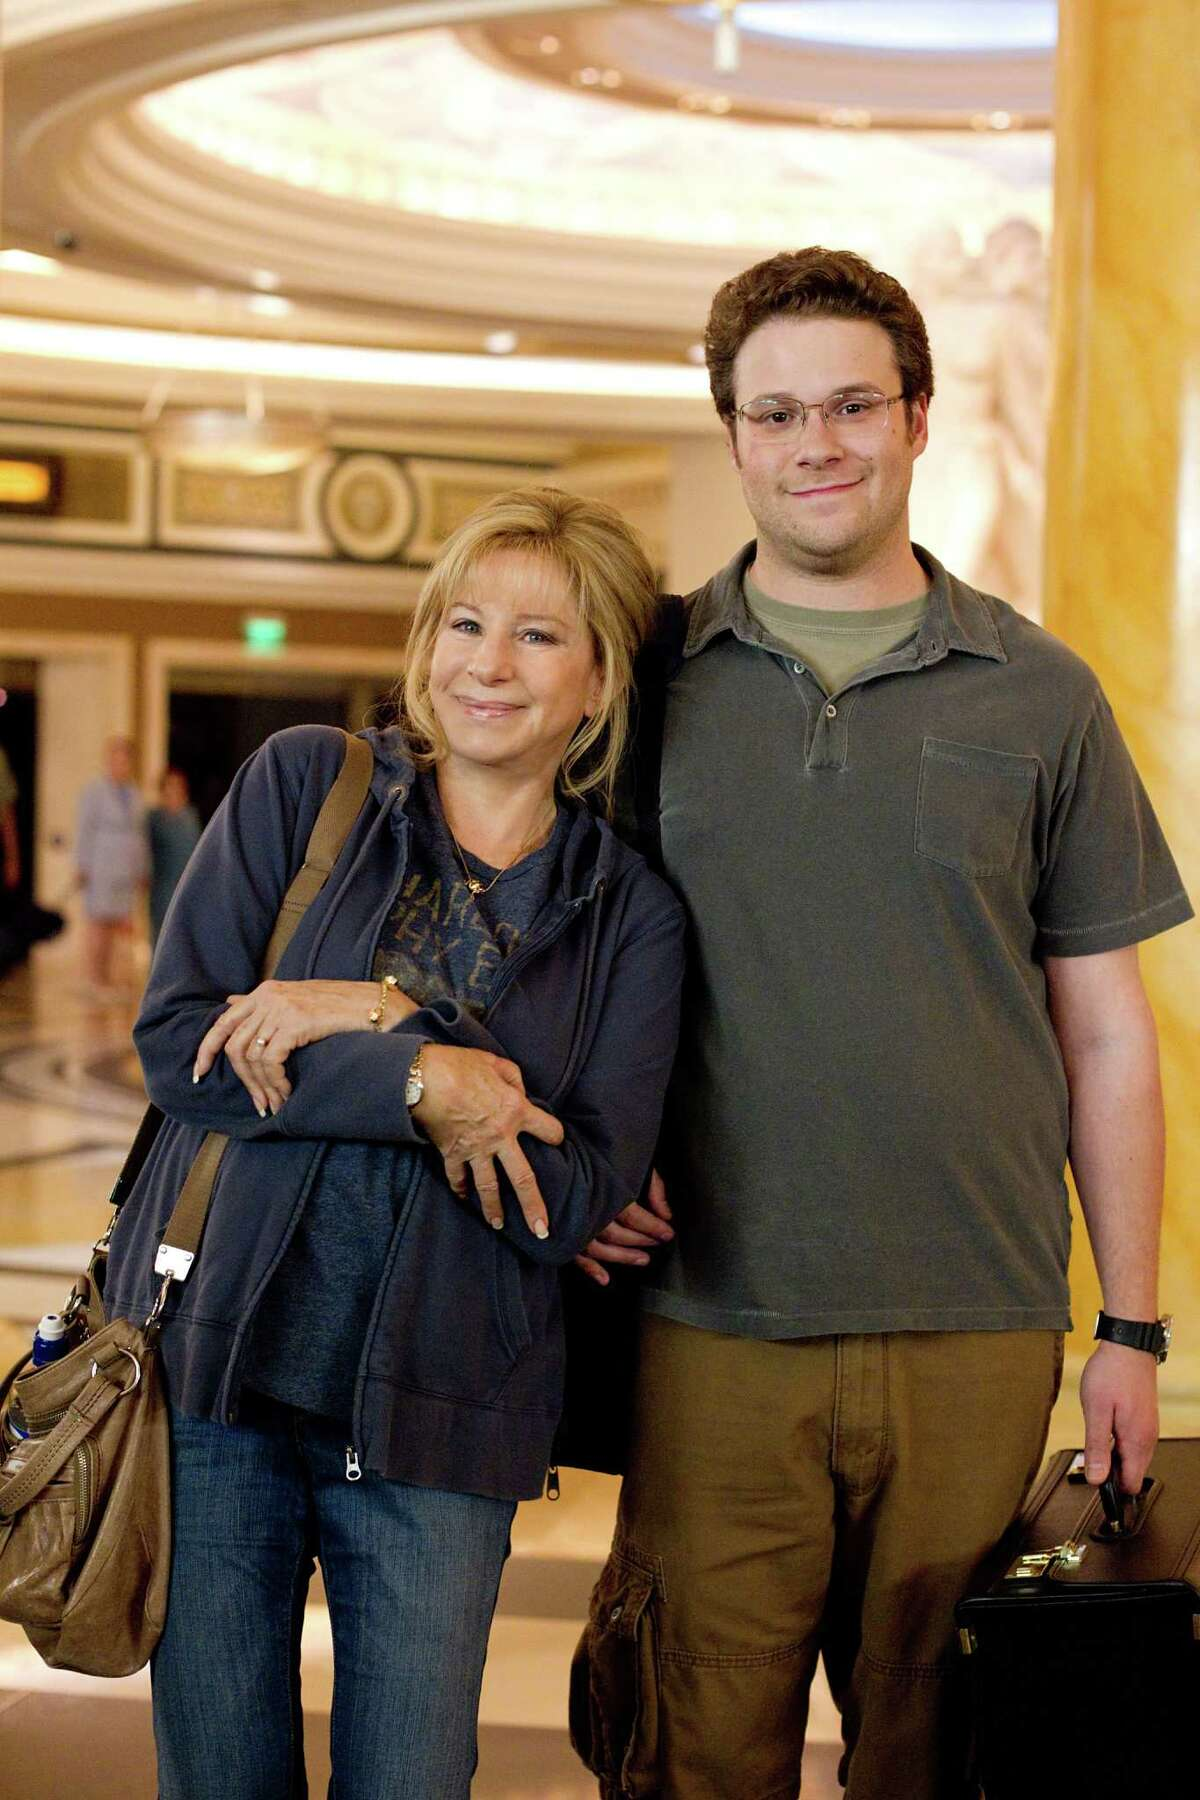 Barbra Streisand and Seth Rogen play mother and son in the pleasantly stereotype-free